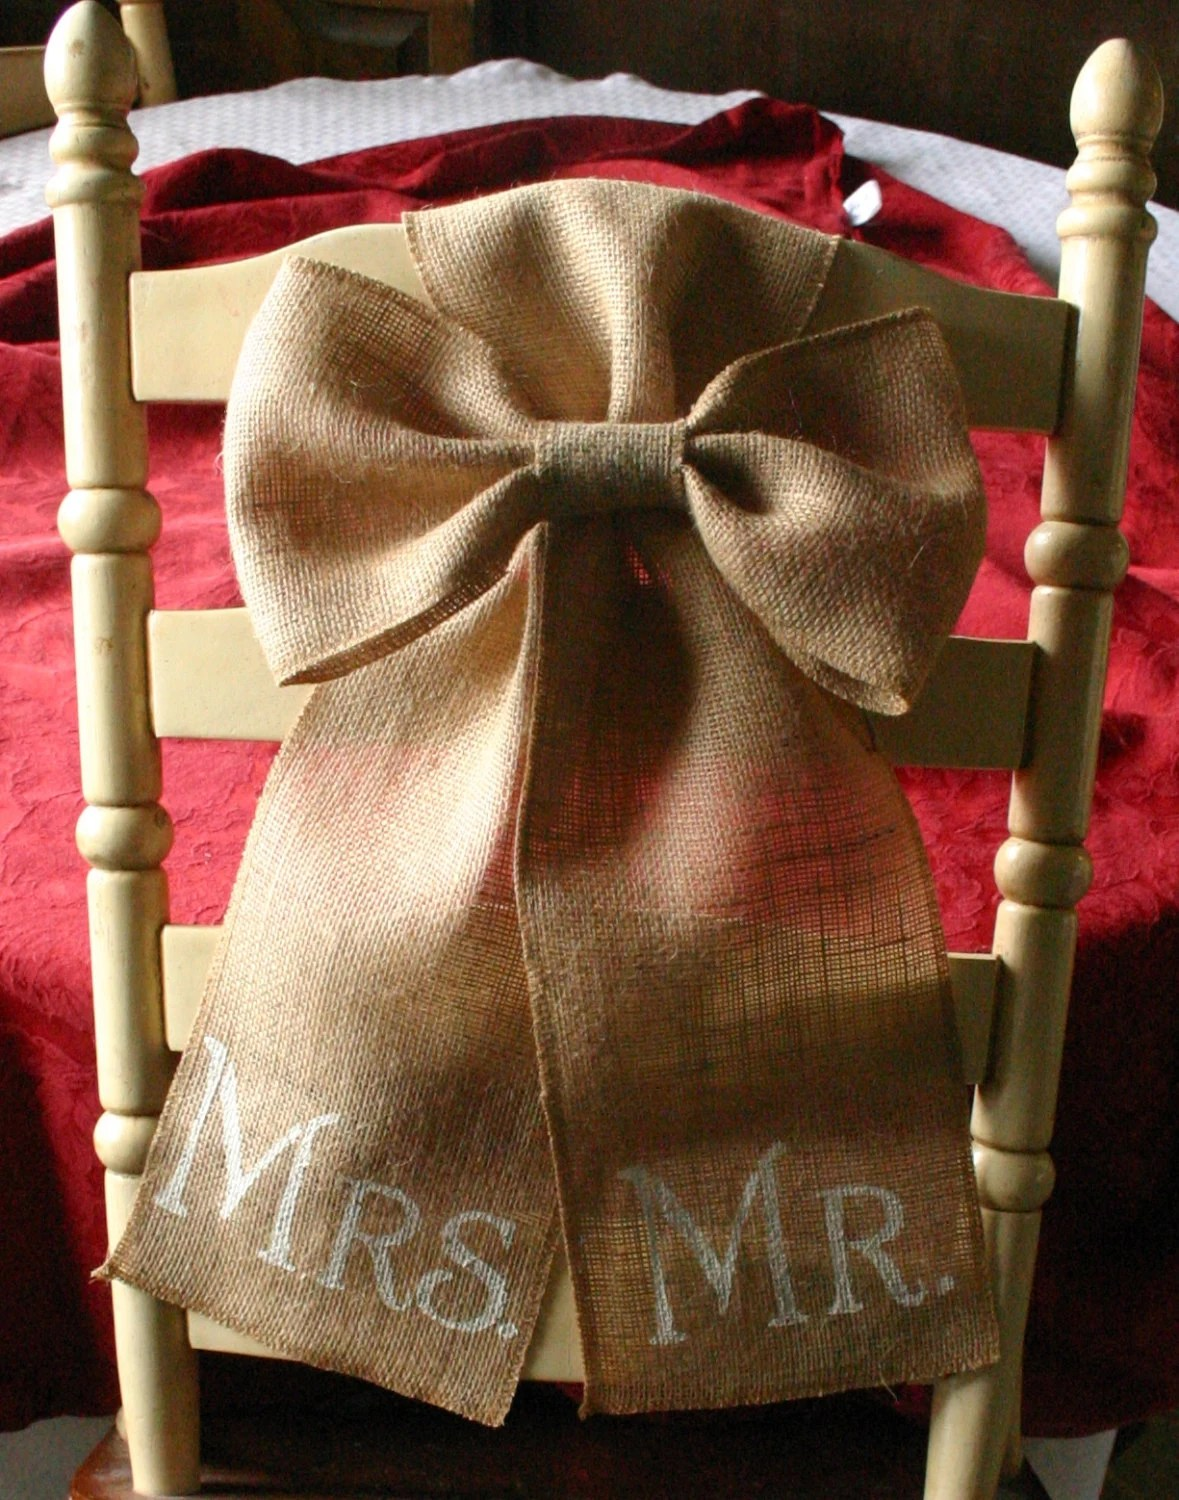 Burlap Chairs Burlap Mr And Mrs Chair Bows For Weddings Sale Bride And